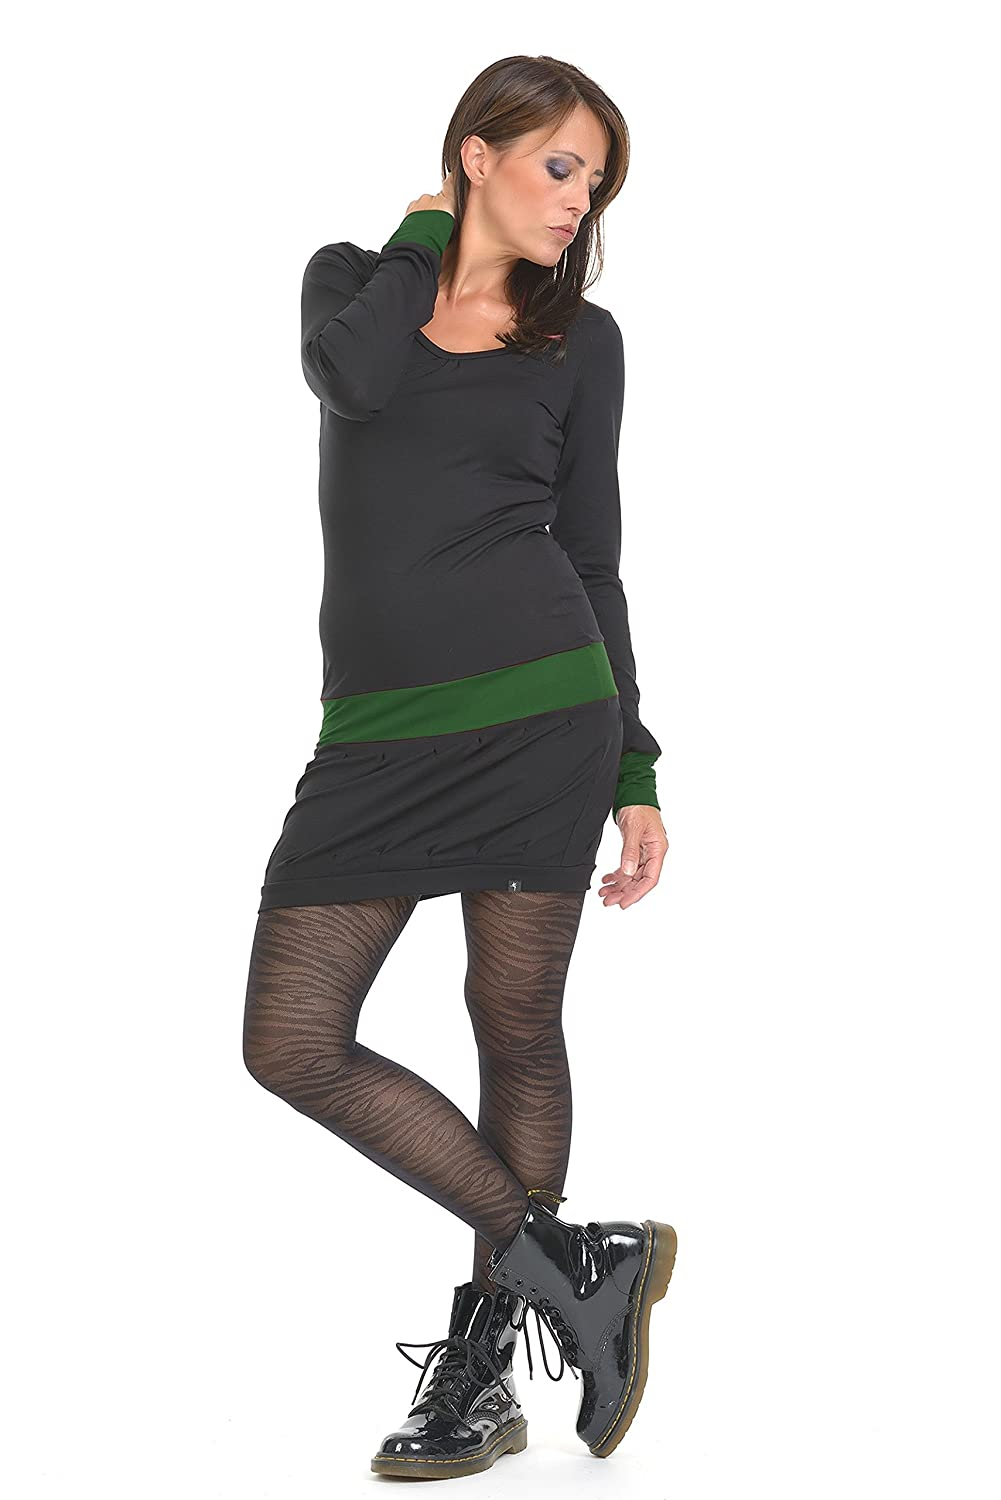 Long Sleeve Woman Dress / Mini Dresses designed by 3Elfen - Casual Bodycon Summer Outfit in Plus Size Fashion Girls / black dark green 3XL